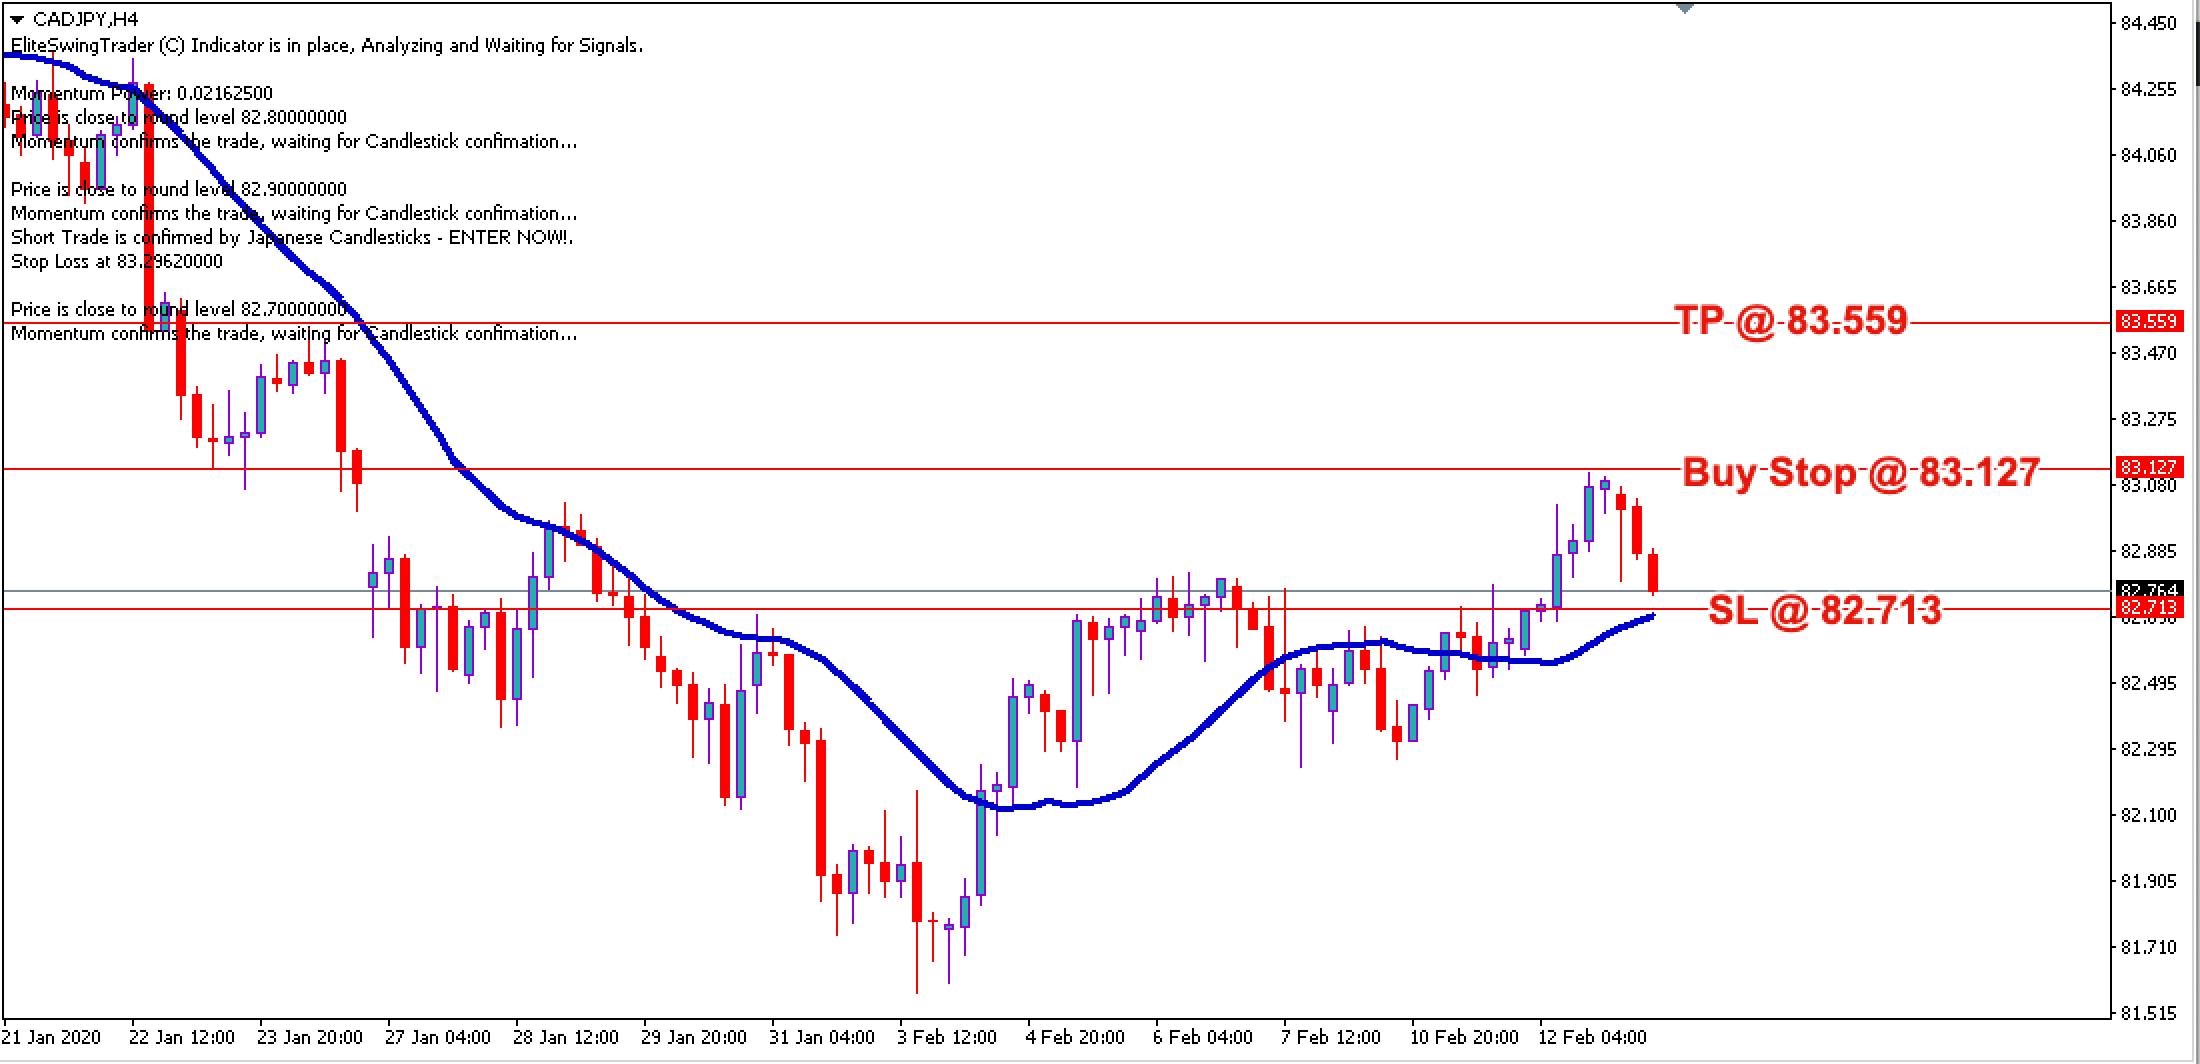 CAD/JPY Daily Price Forecast – 13th Feb 2020